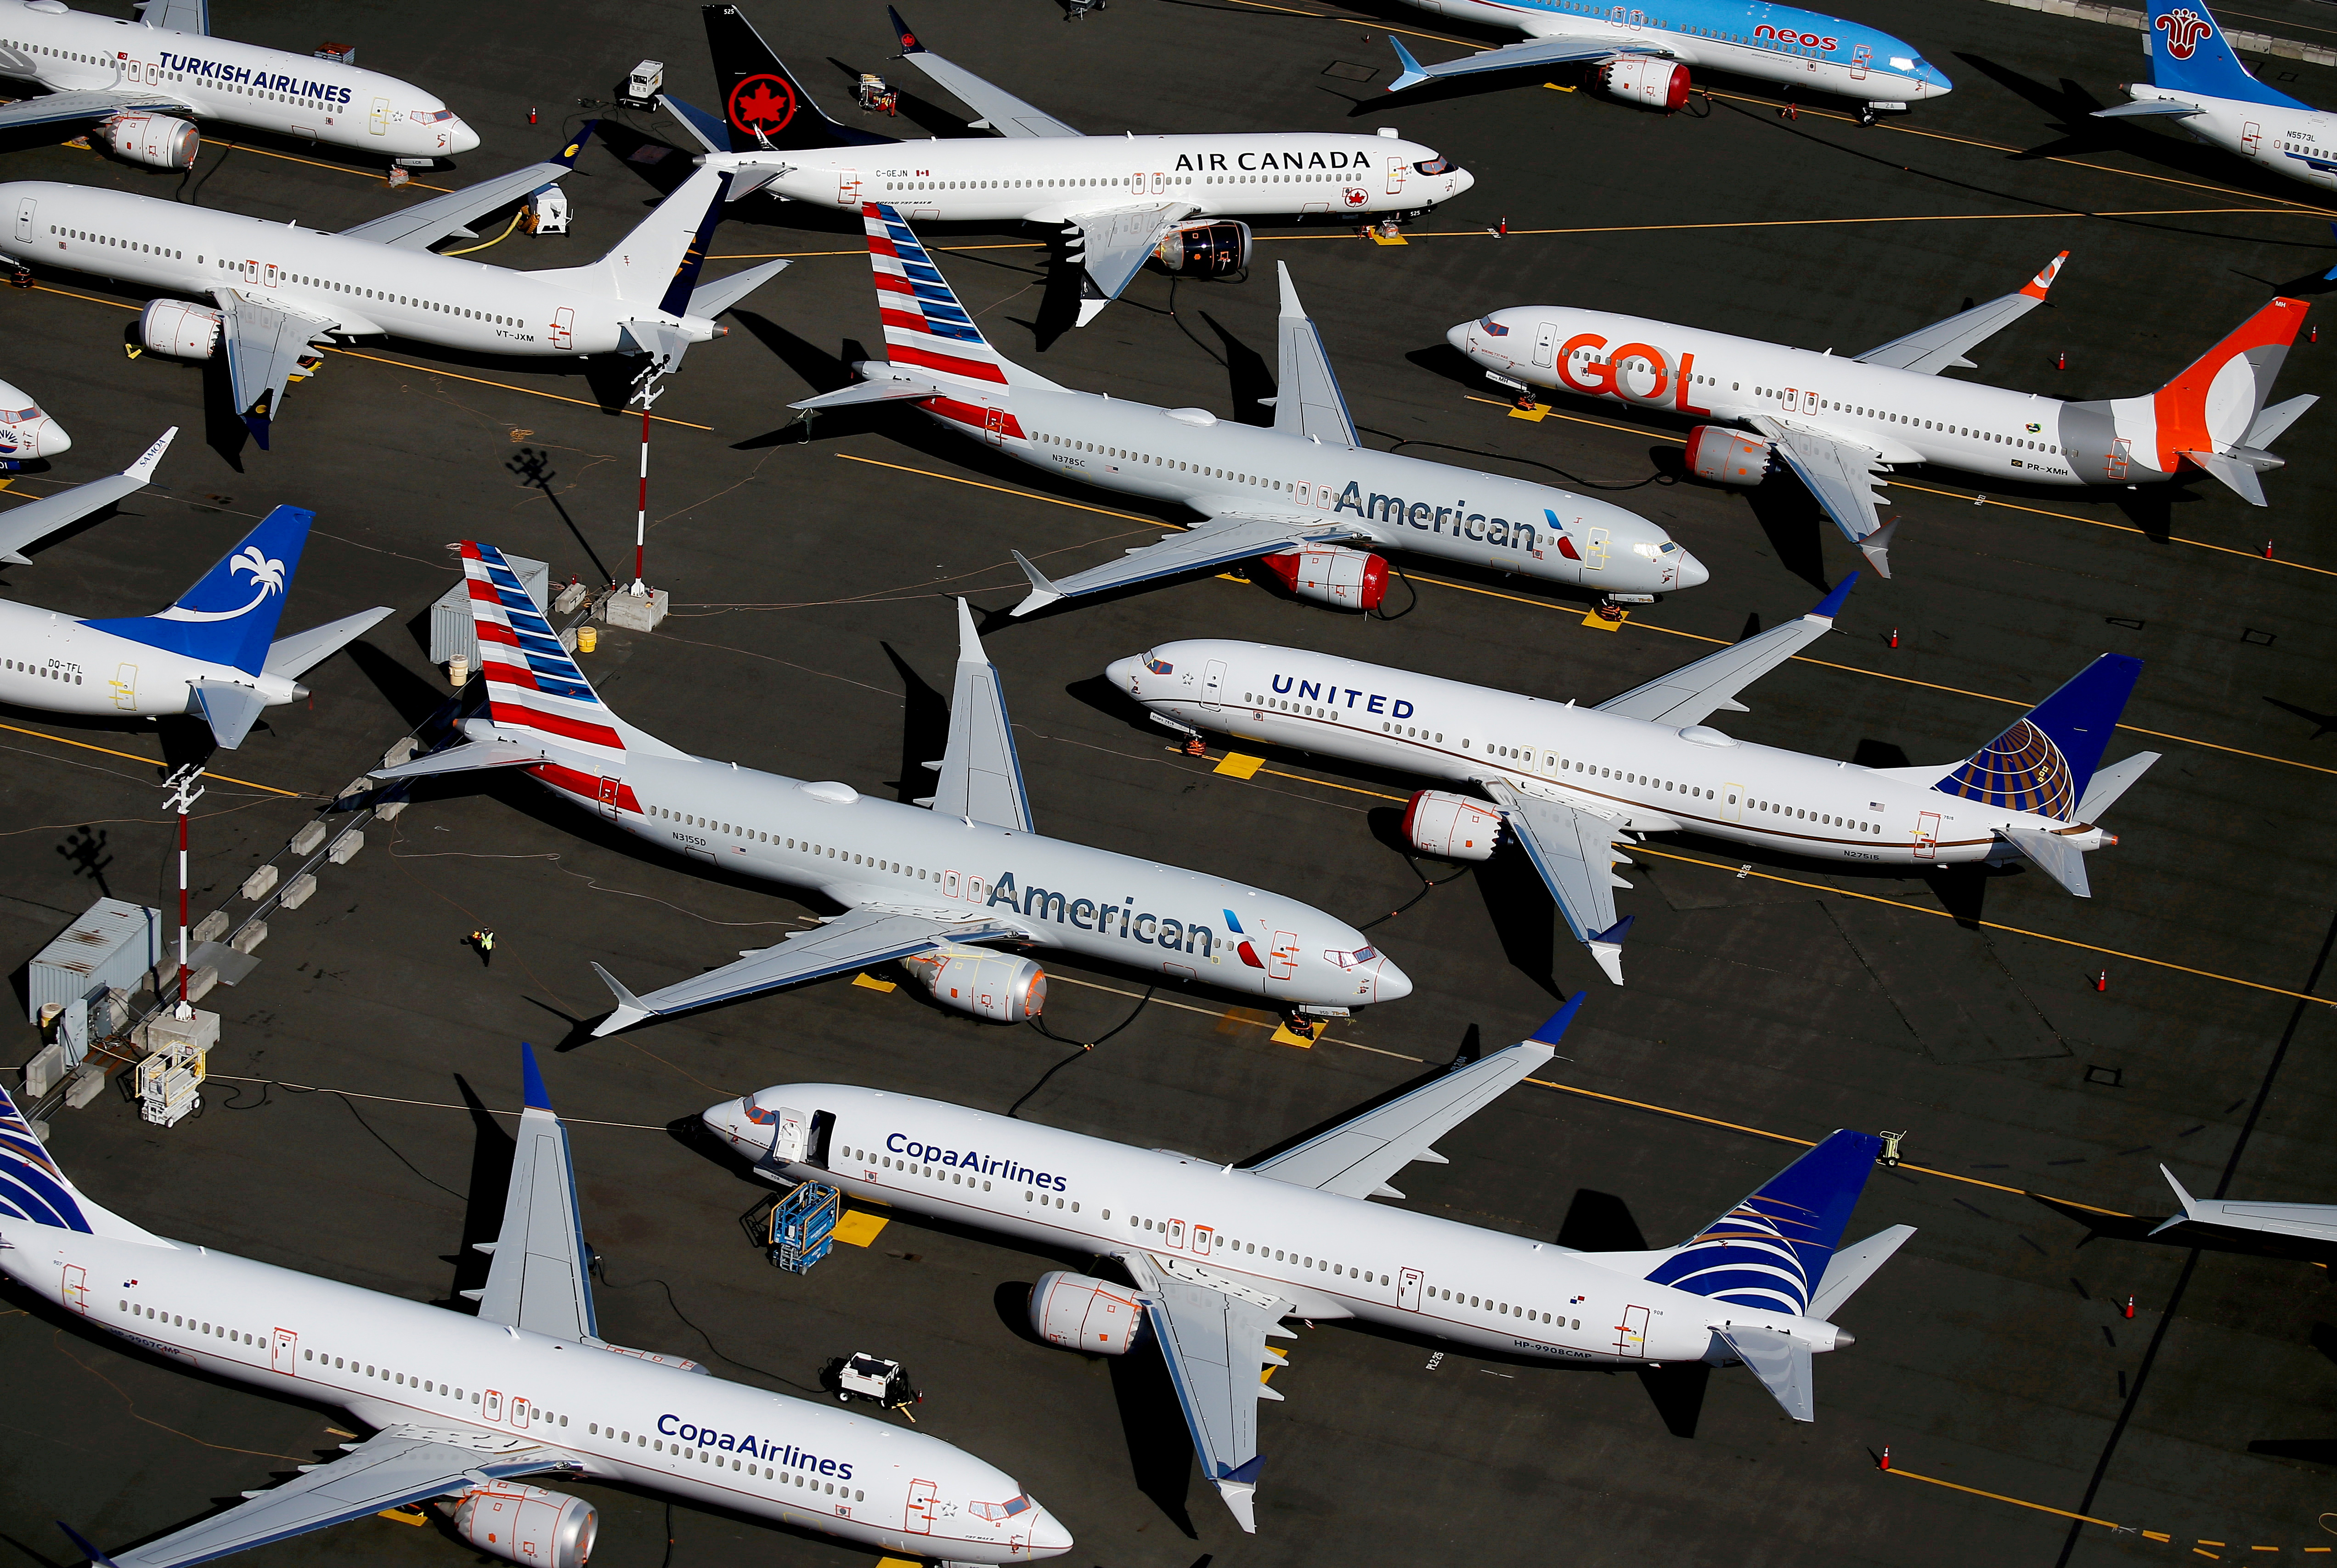 Grounded Boeing 737 MAX aircraft are seen parked in an aerial photo at Boeing Field in Seattle, Washington, U.S. July 1, 2019.REUTERS/Lindsey Wasson